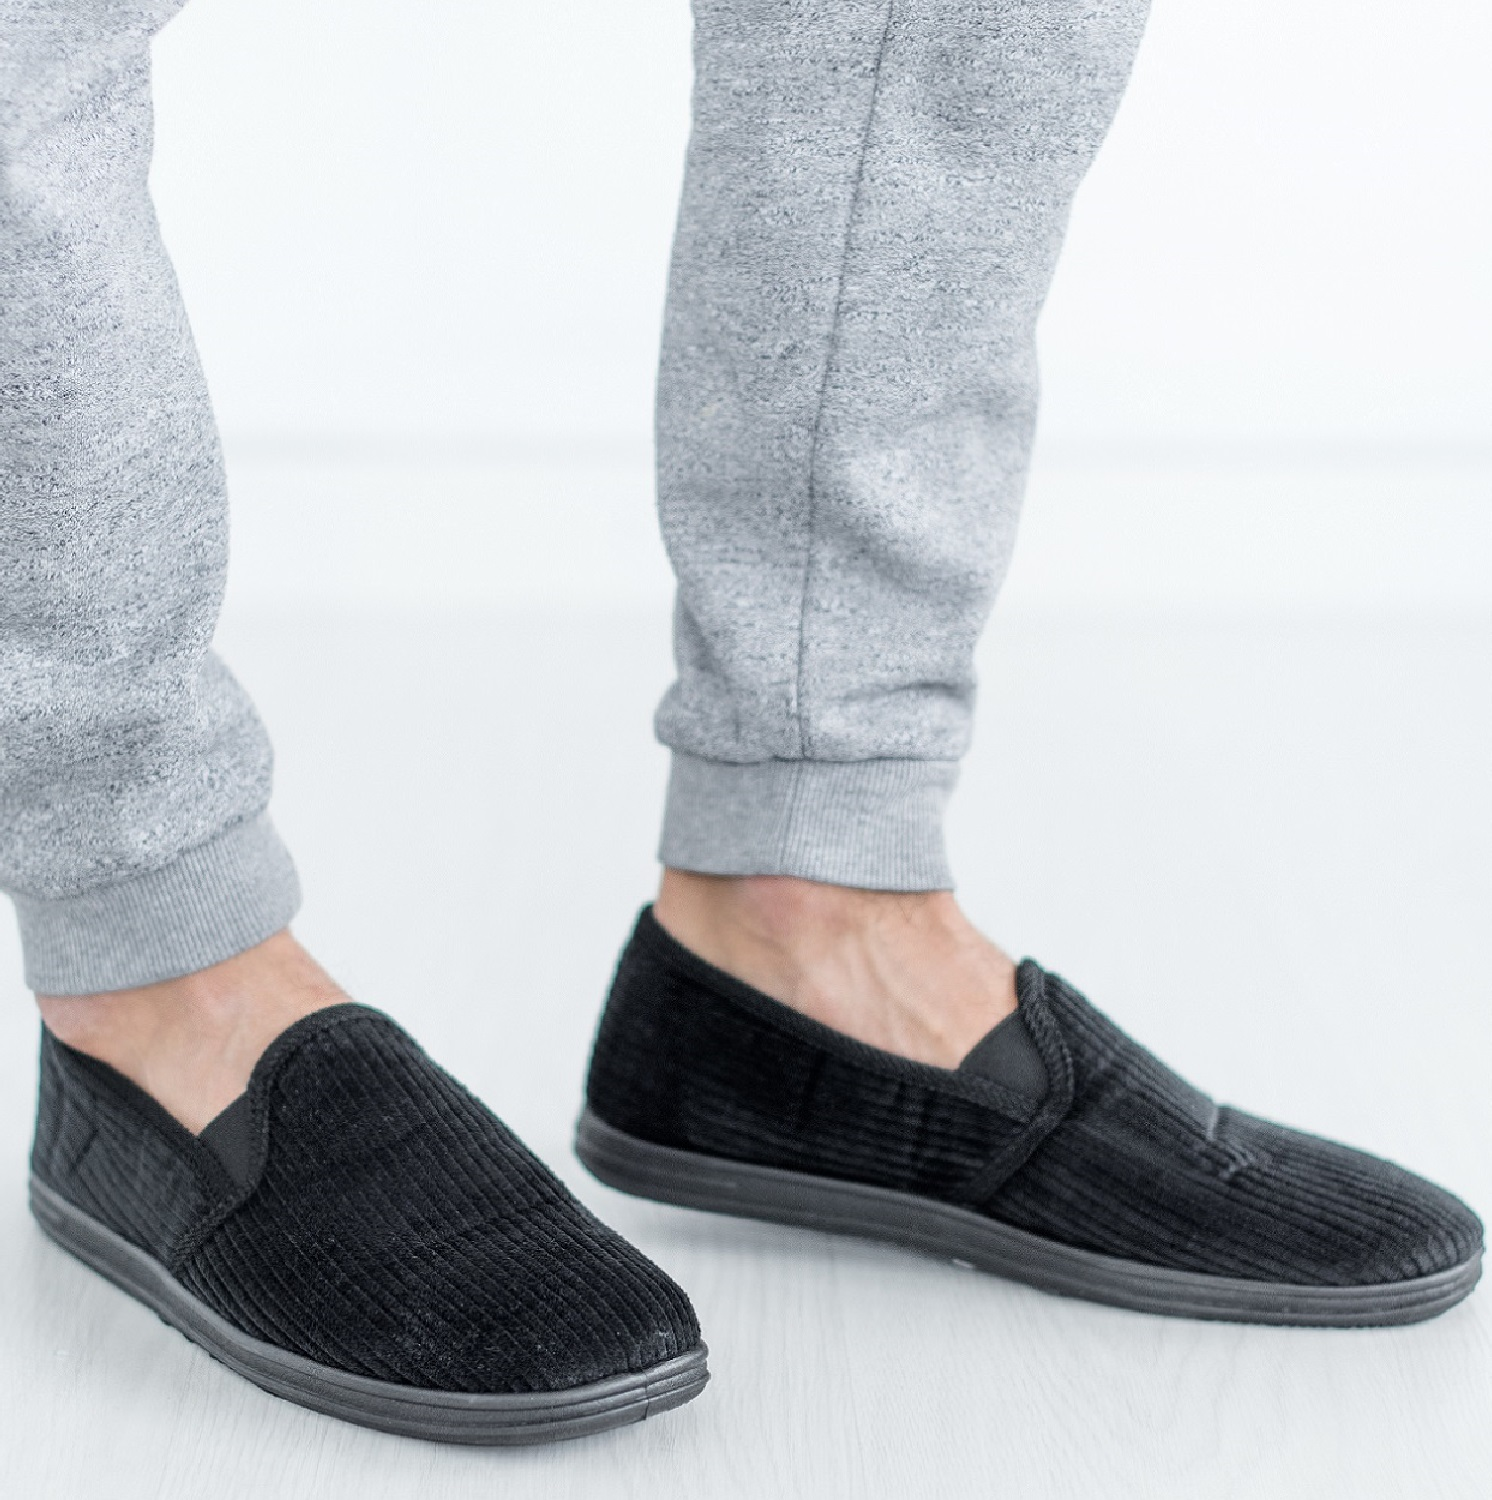 MENS SLIP ON SHOES BLACK STRIPED WARM INDOOR HARD SOLE COMFY SLIPPERS SIZE 6-12